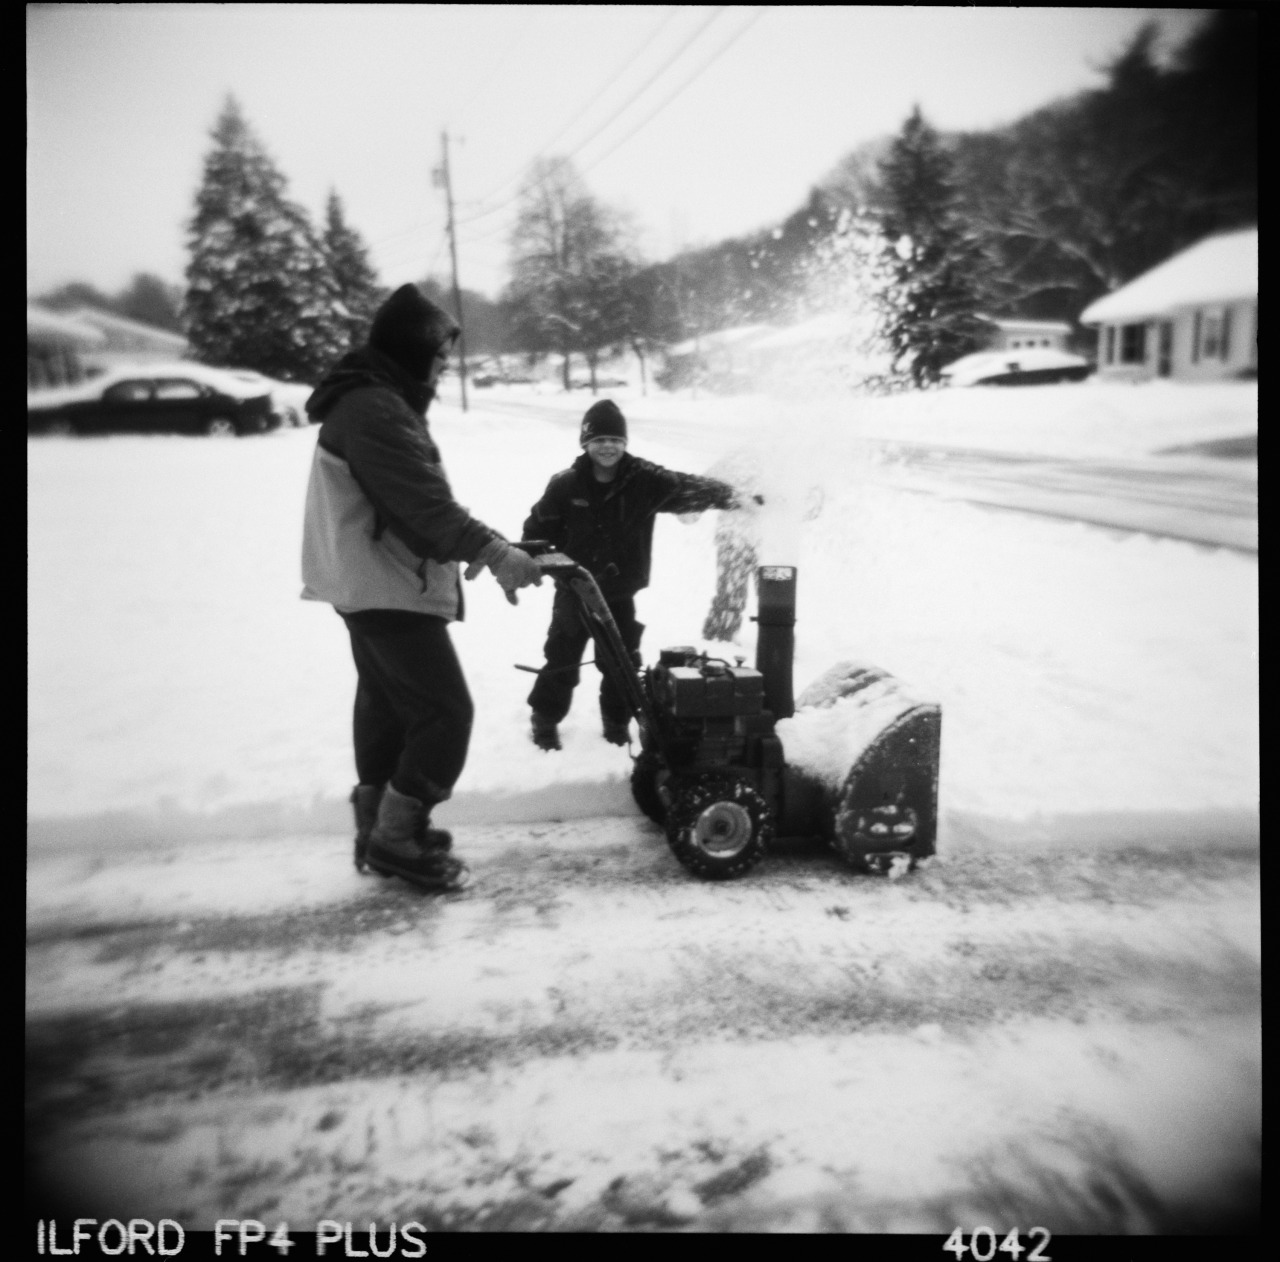 Playing With the Snowblower, Holga, Ilford FP4. Nicholas Schietromo